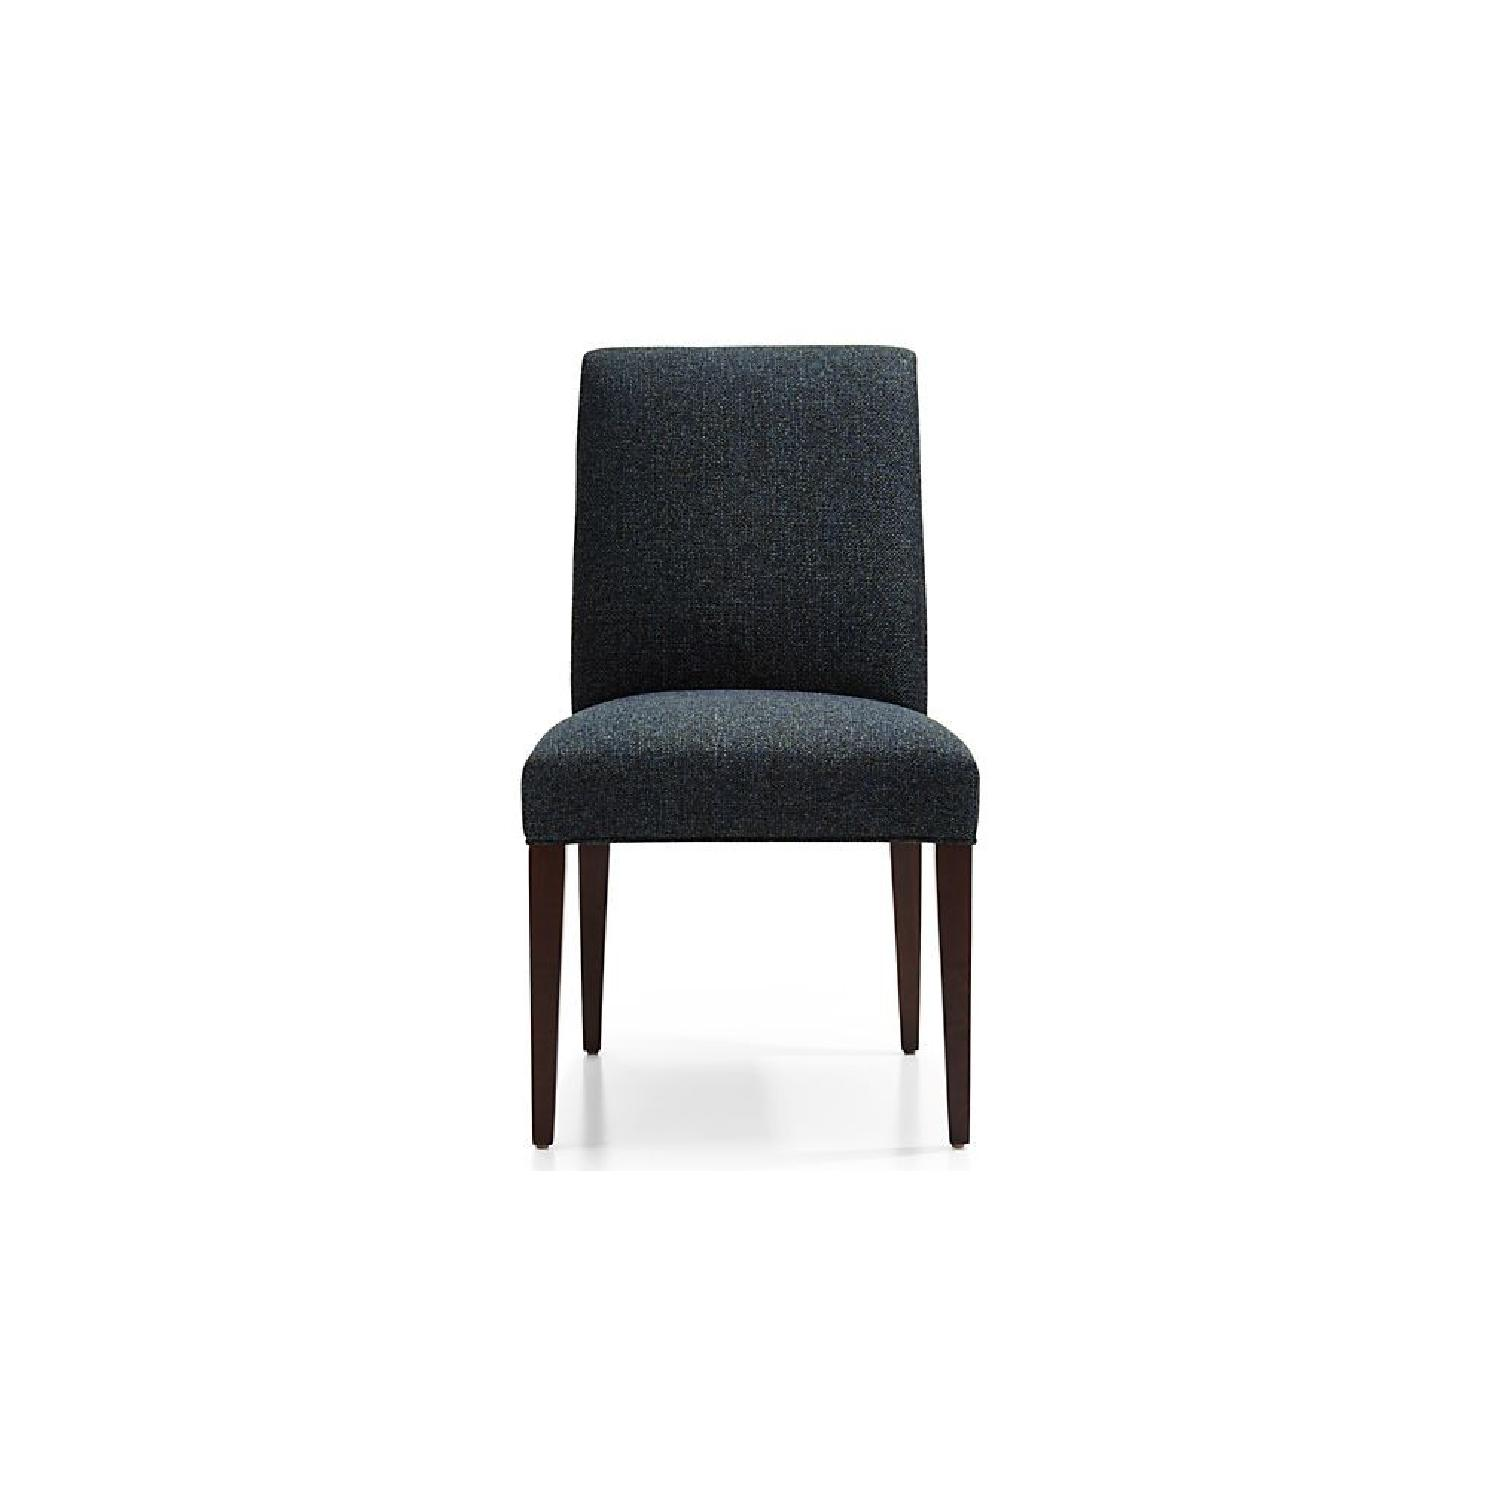 Crate & Barrel Miles Upholstered Dining Chair - image-0